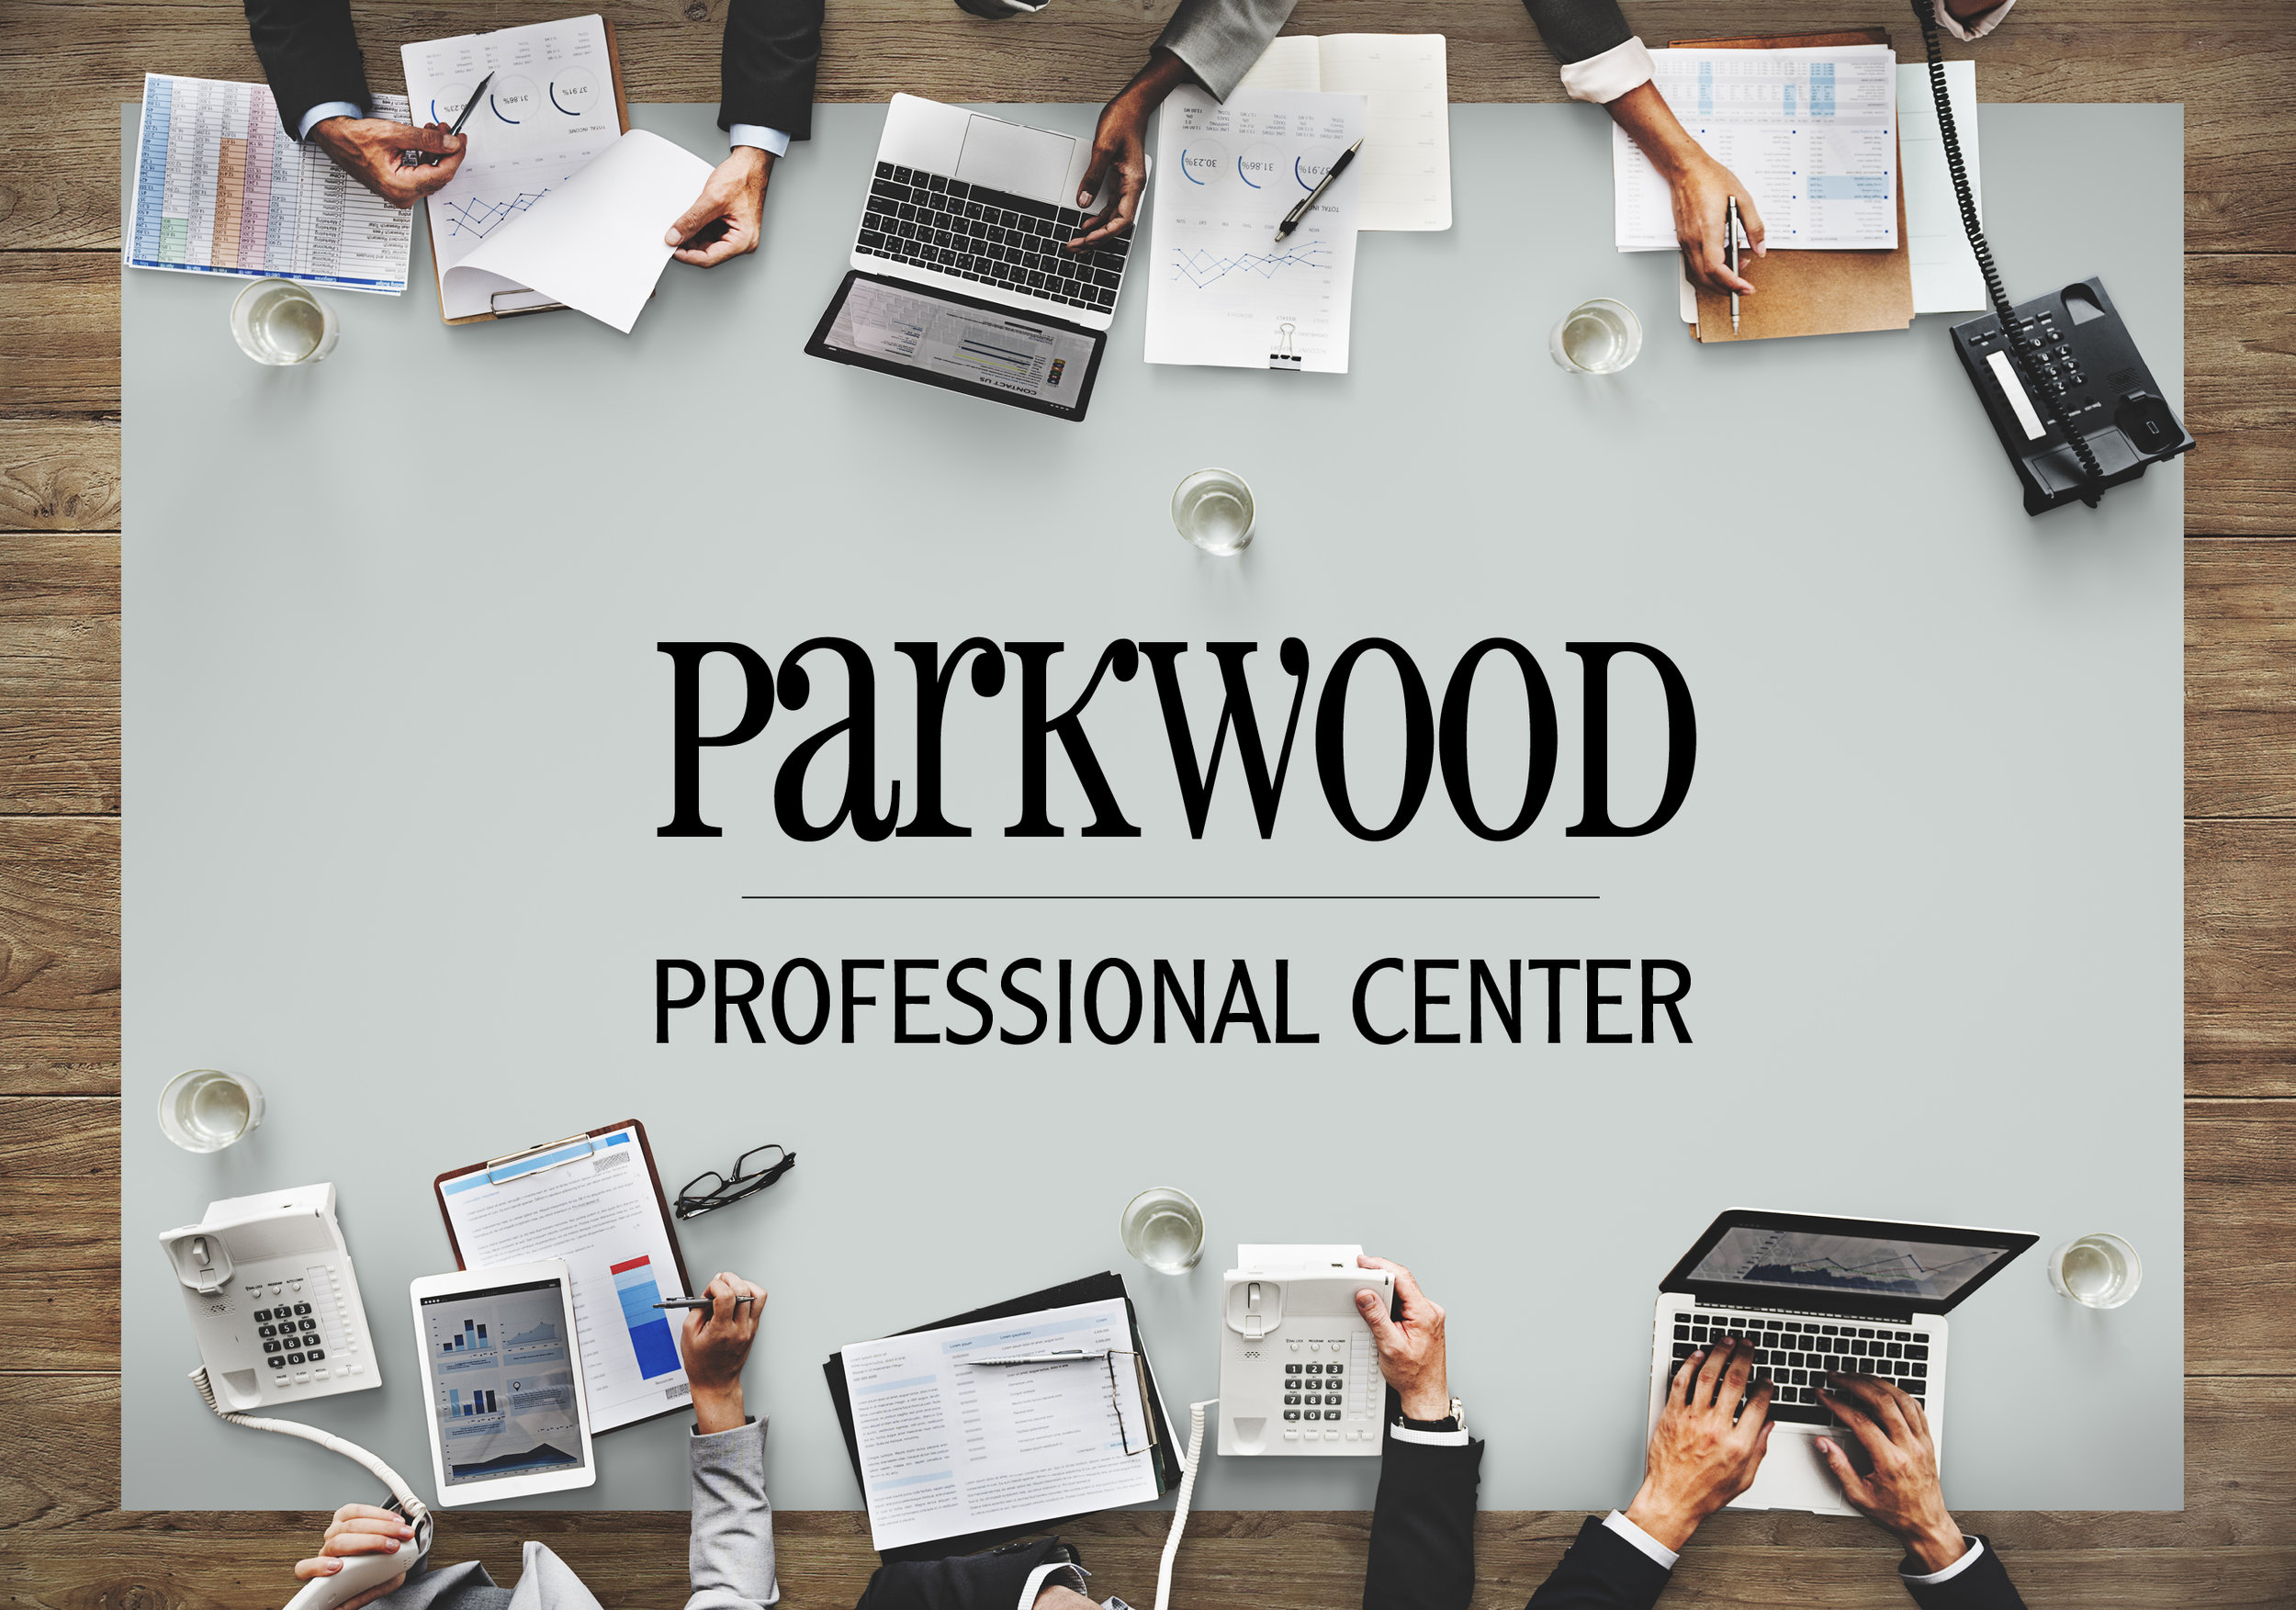 Parkwood Professional Center - 201 S. Bradley Hwy.Rogers City, MI 49779(231) 264-9108